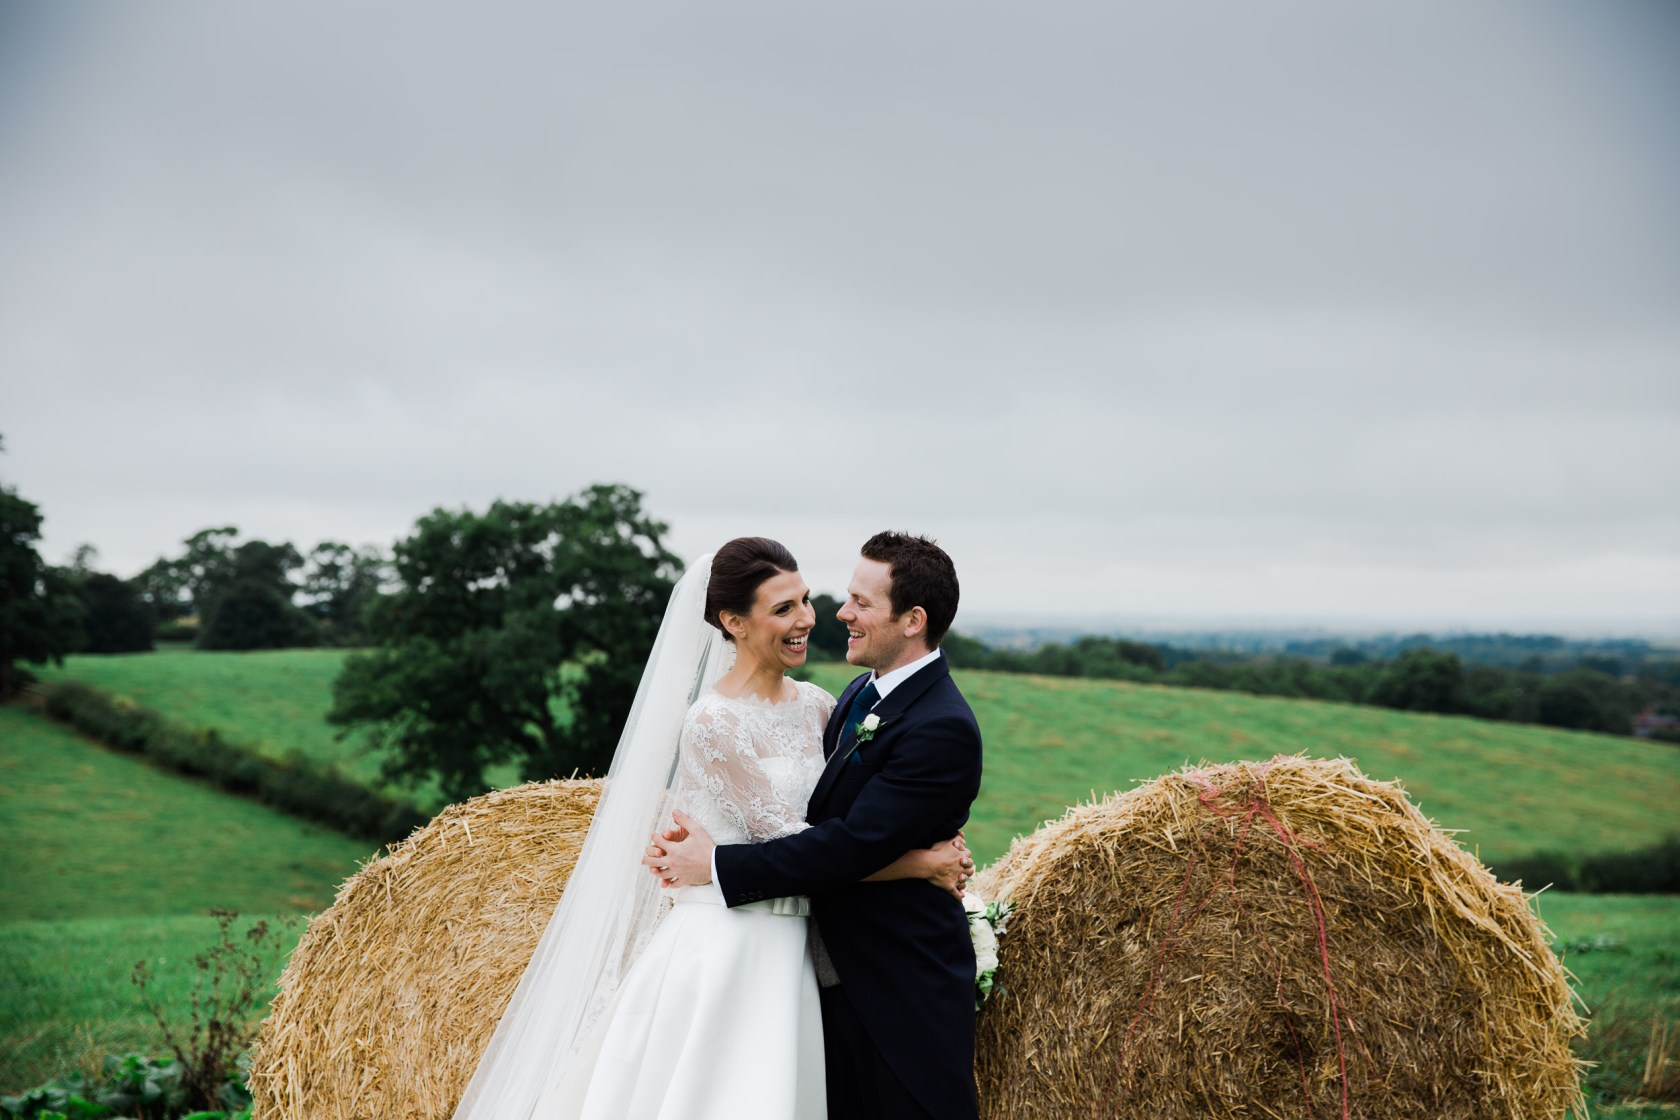 Chic & Rustic Home Farm Wedding daventry wedding photographer hay bales portraits